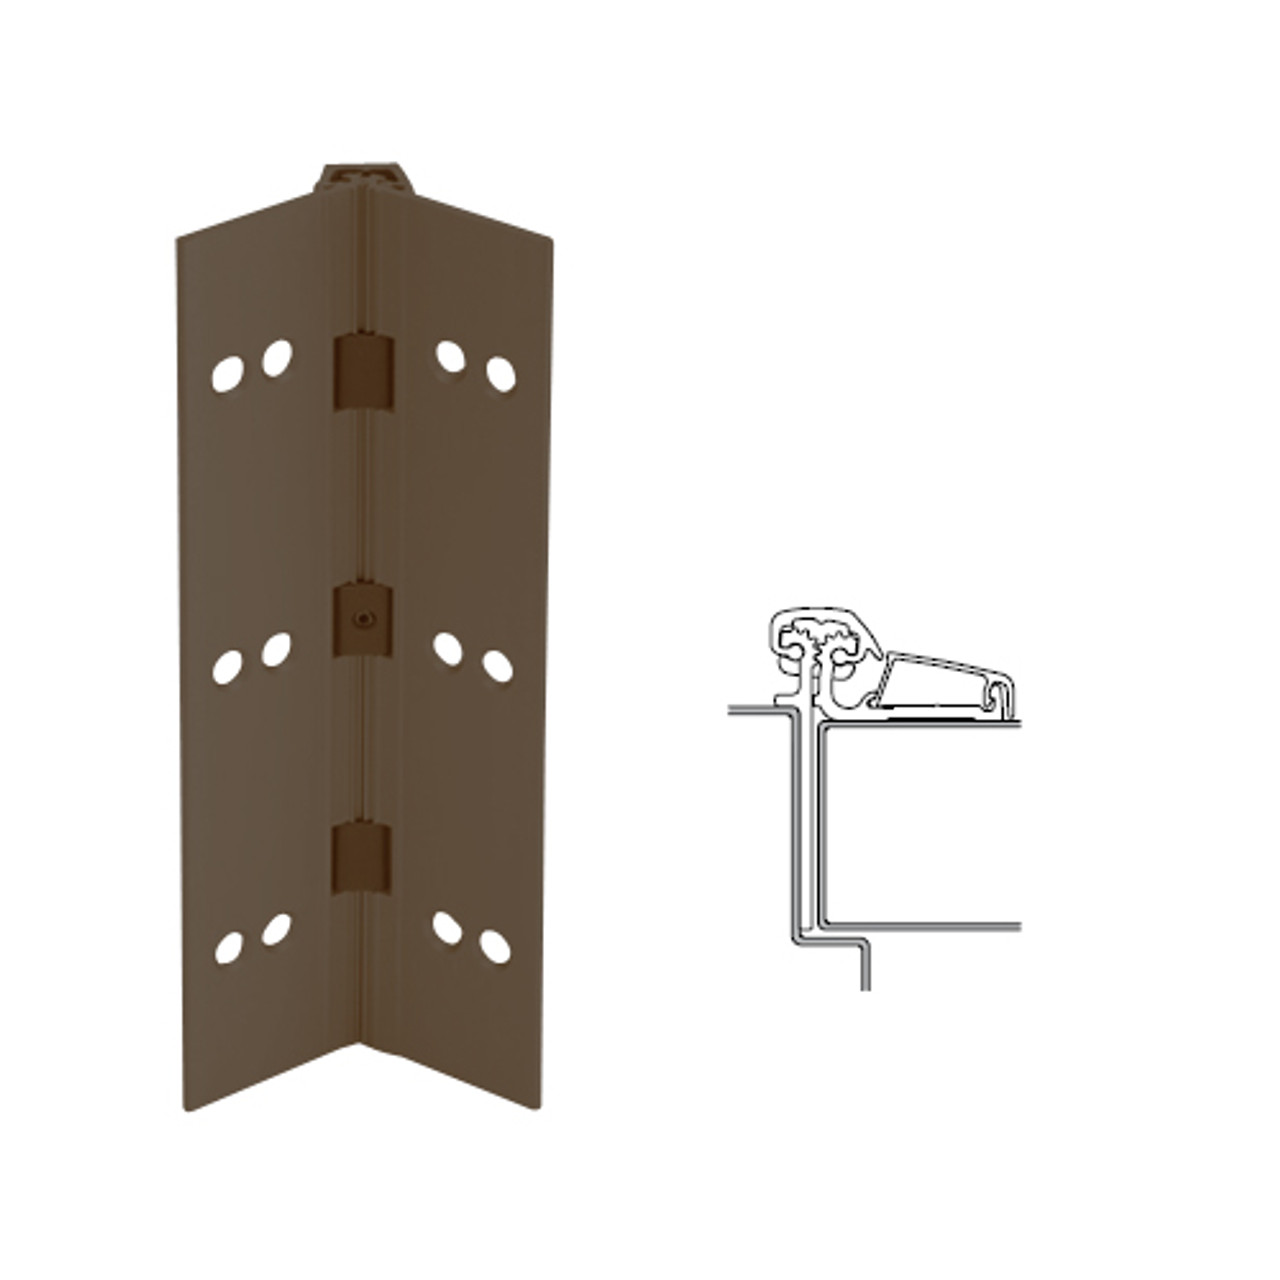 054XY-313AN-95-WD IVES Adjustable Half Surface Continuous Geared Hinges with Wood Screws in Dark Bronze Anodized